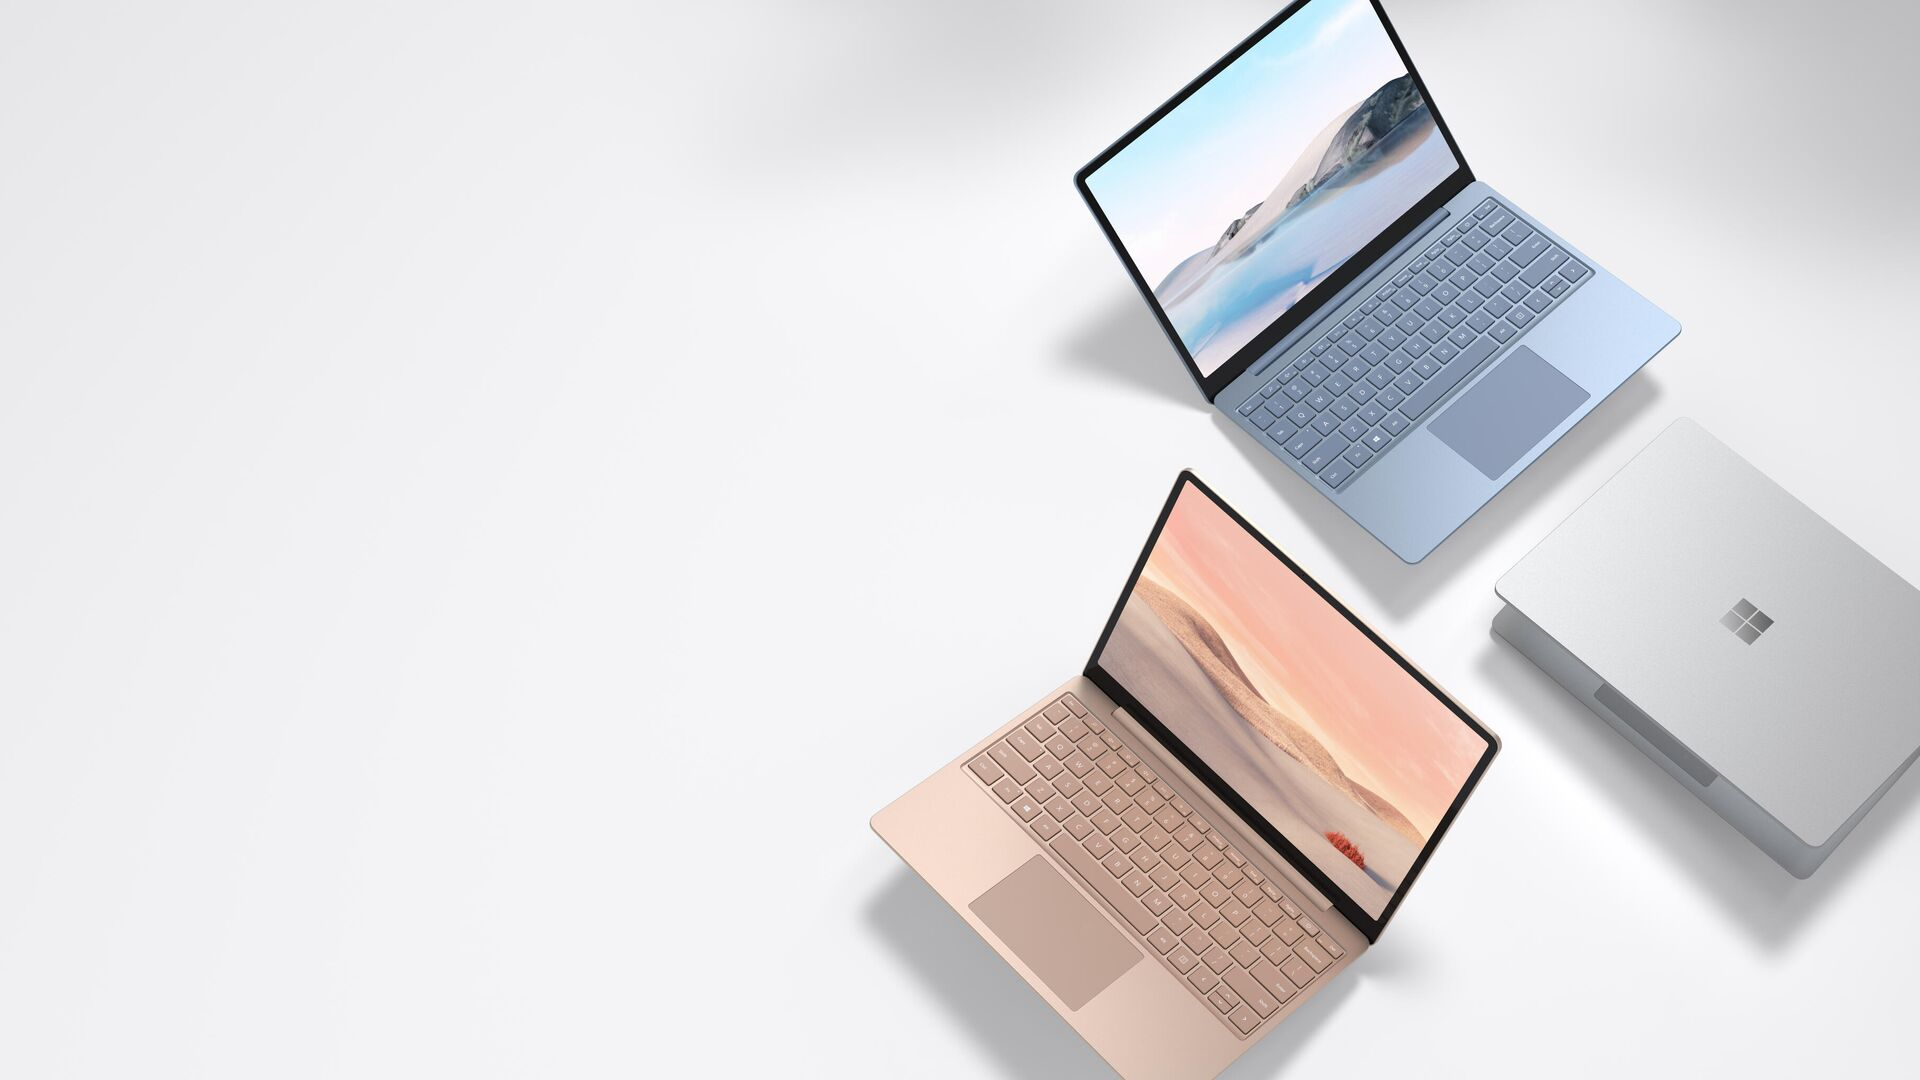 Microsoft Surface Laptop Go - РИА Новости, 1920, 20.01.2021